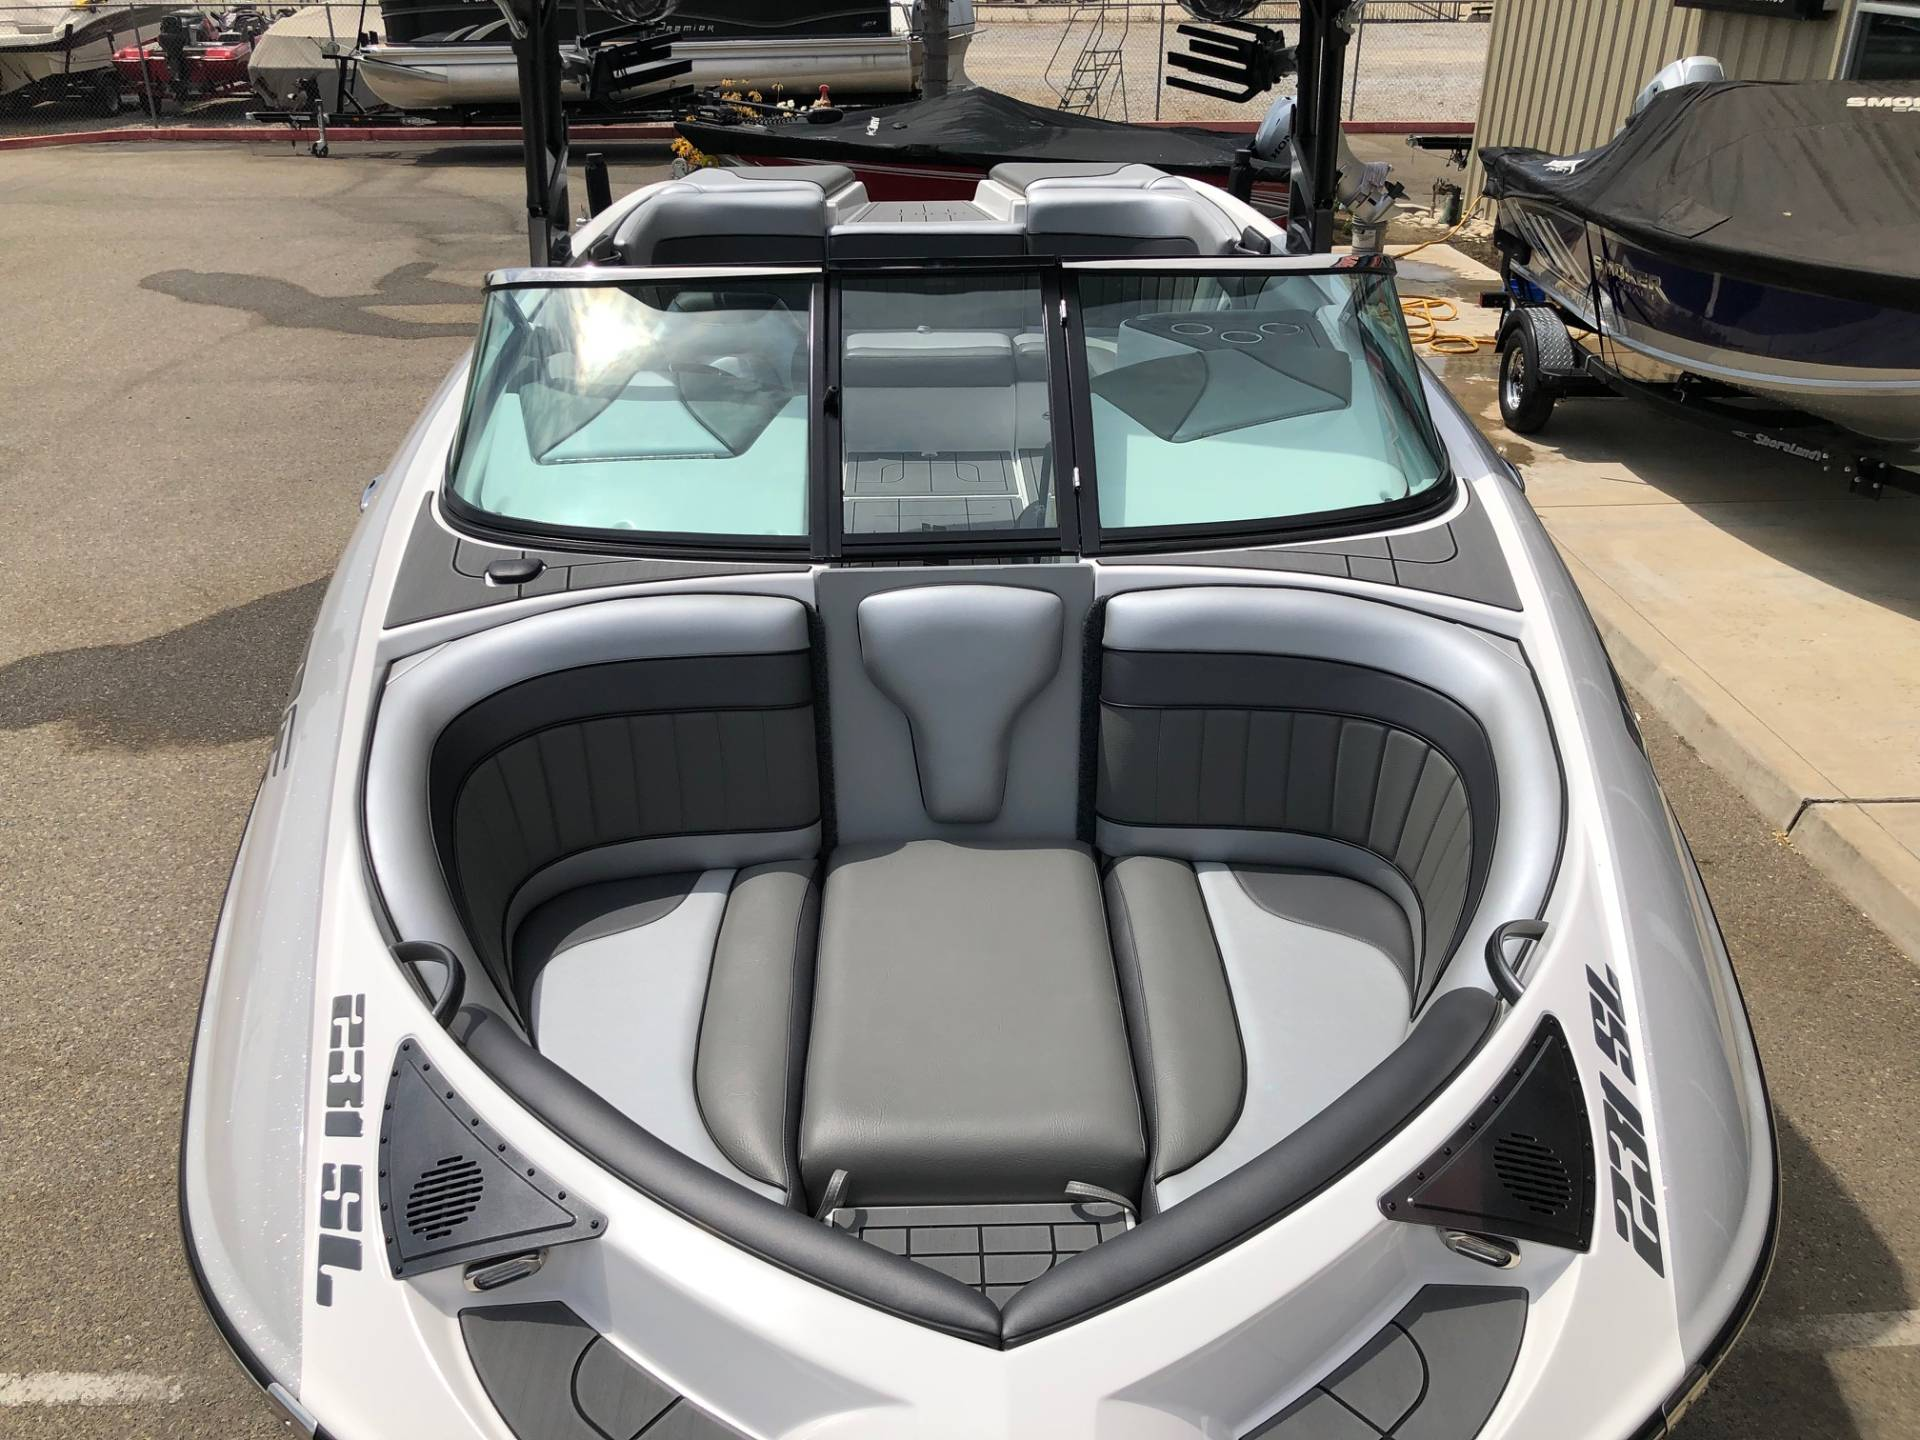 2021 Sanger Boats 231 SL in Madera, California - Photo 7